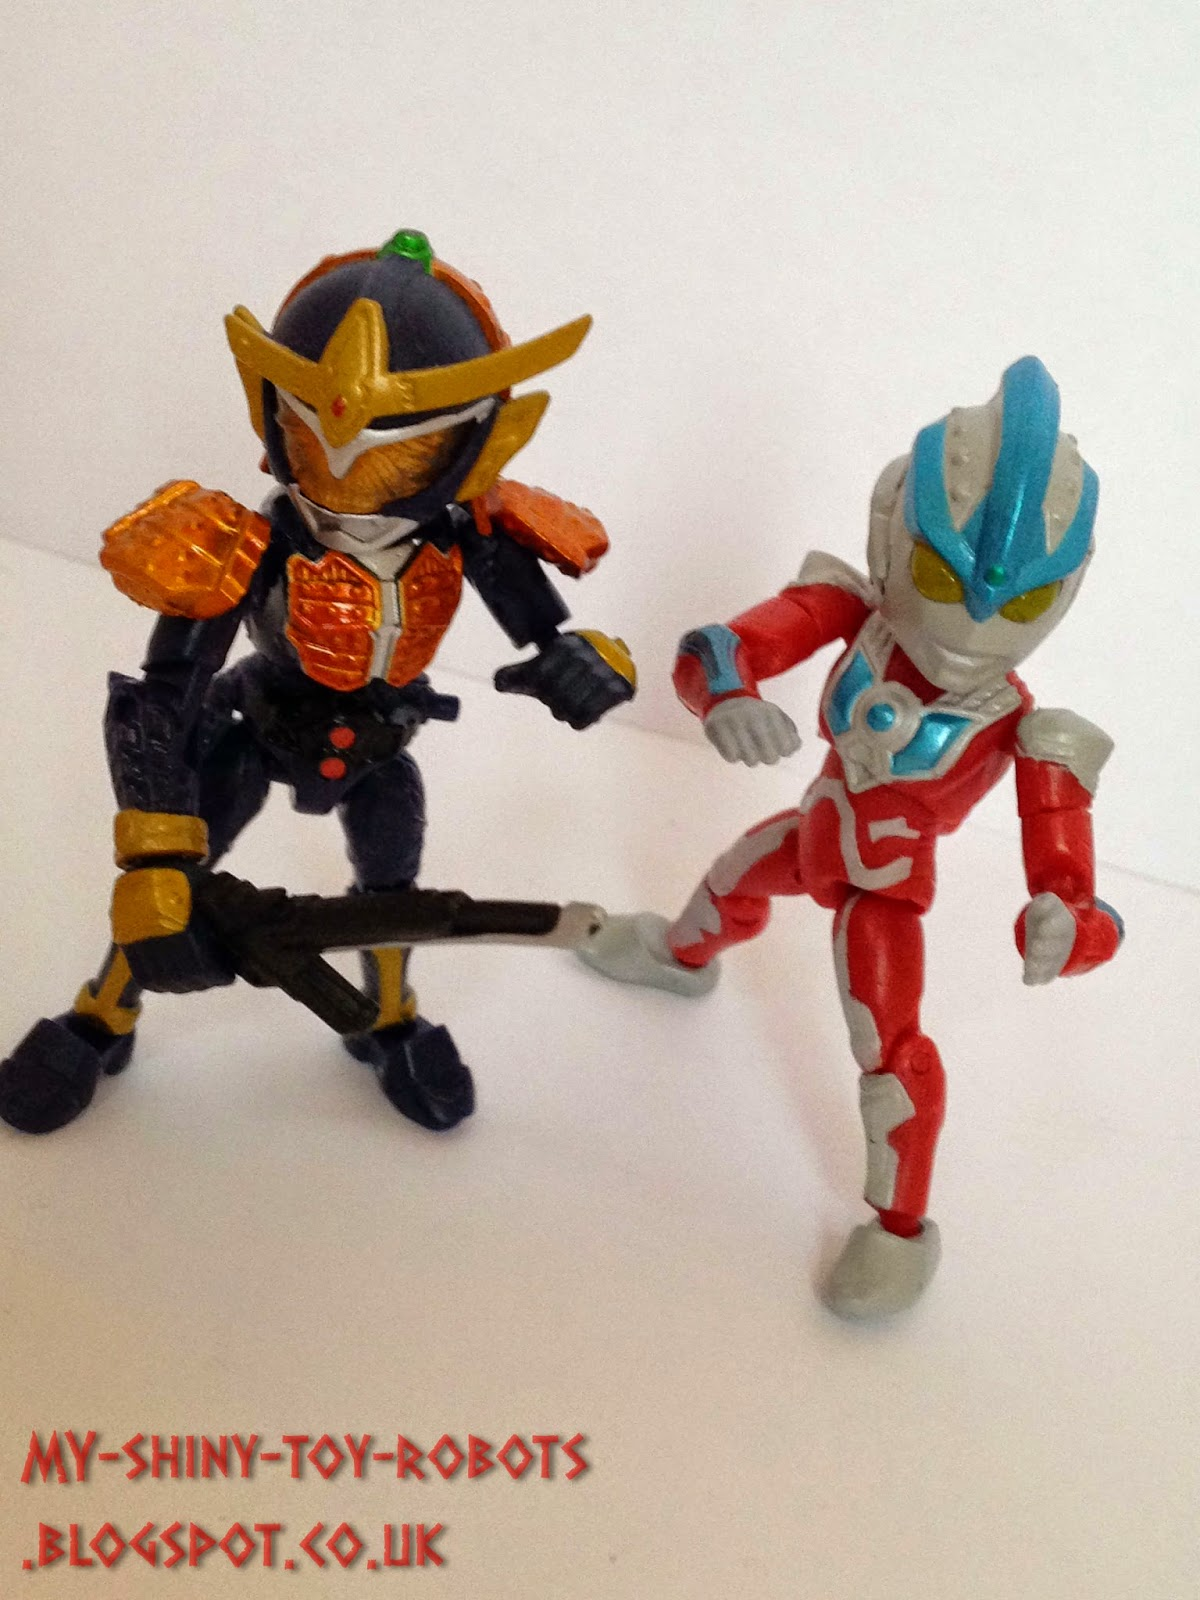 Teaming up with 66action Gaim